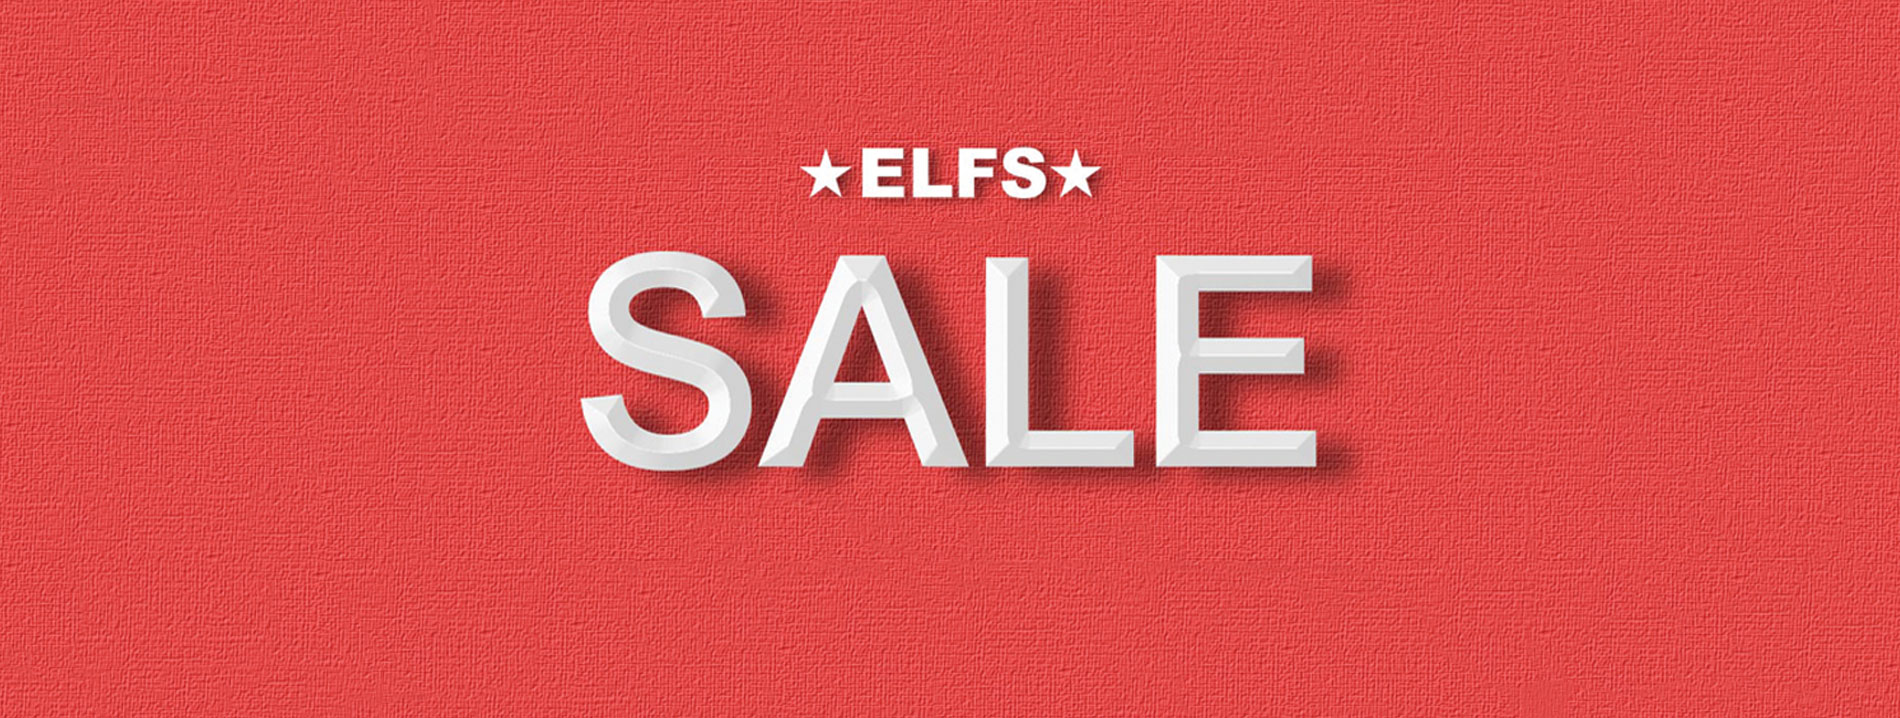 2019-SALE-webNEW-1